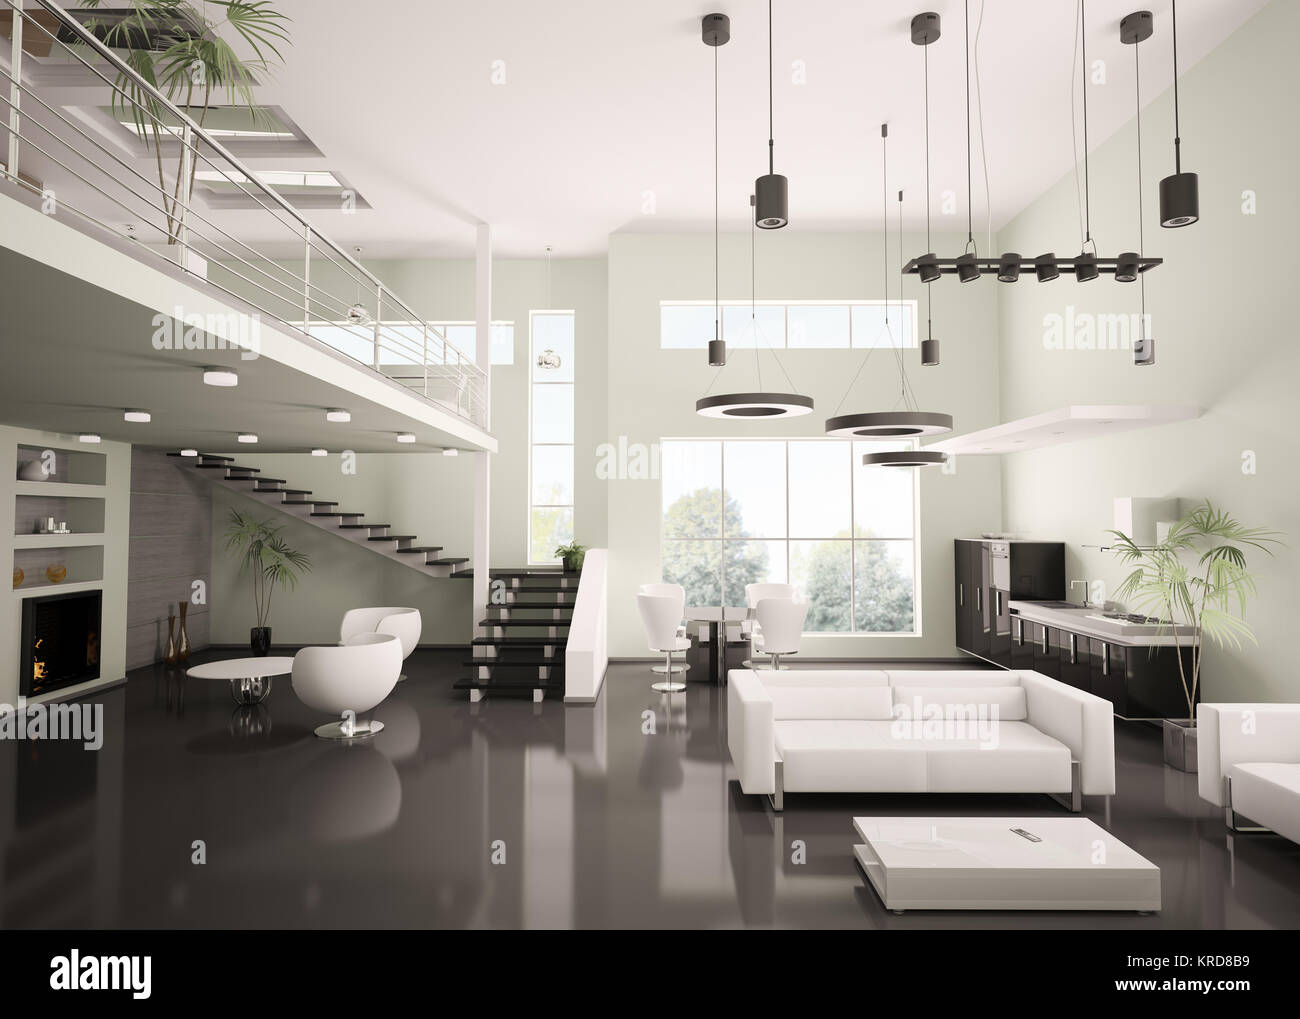 Interior of modern apartment living room kitchen 3d render Stock ...